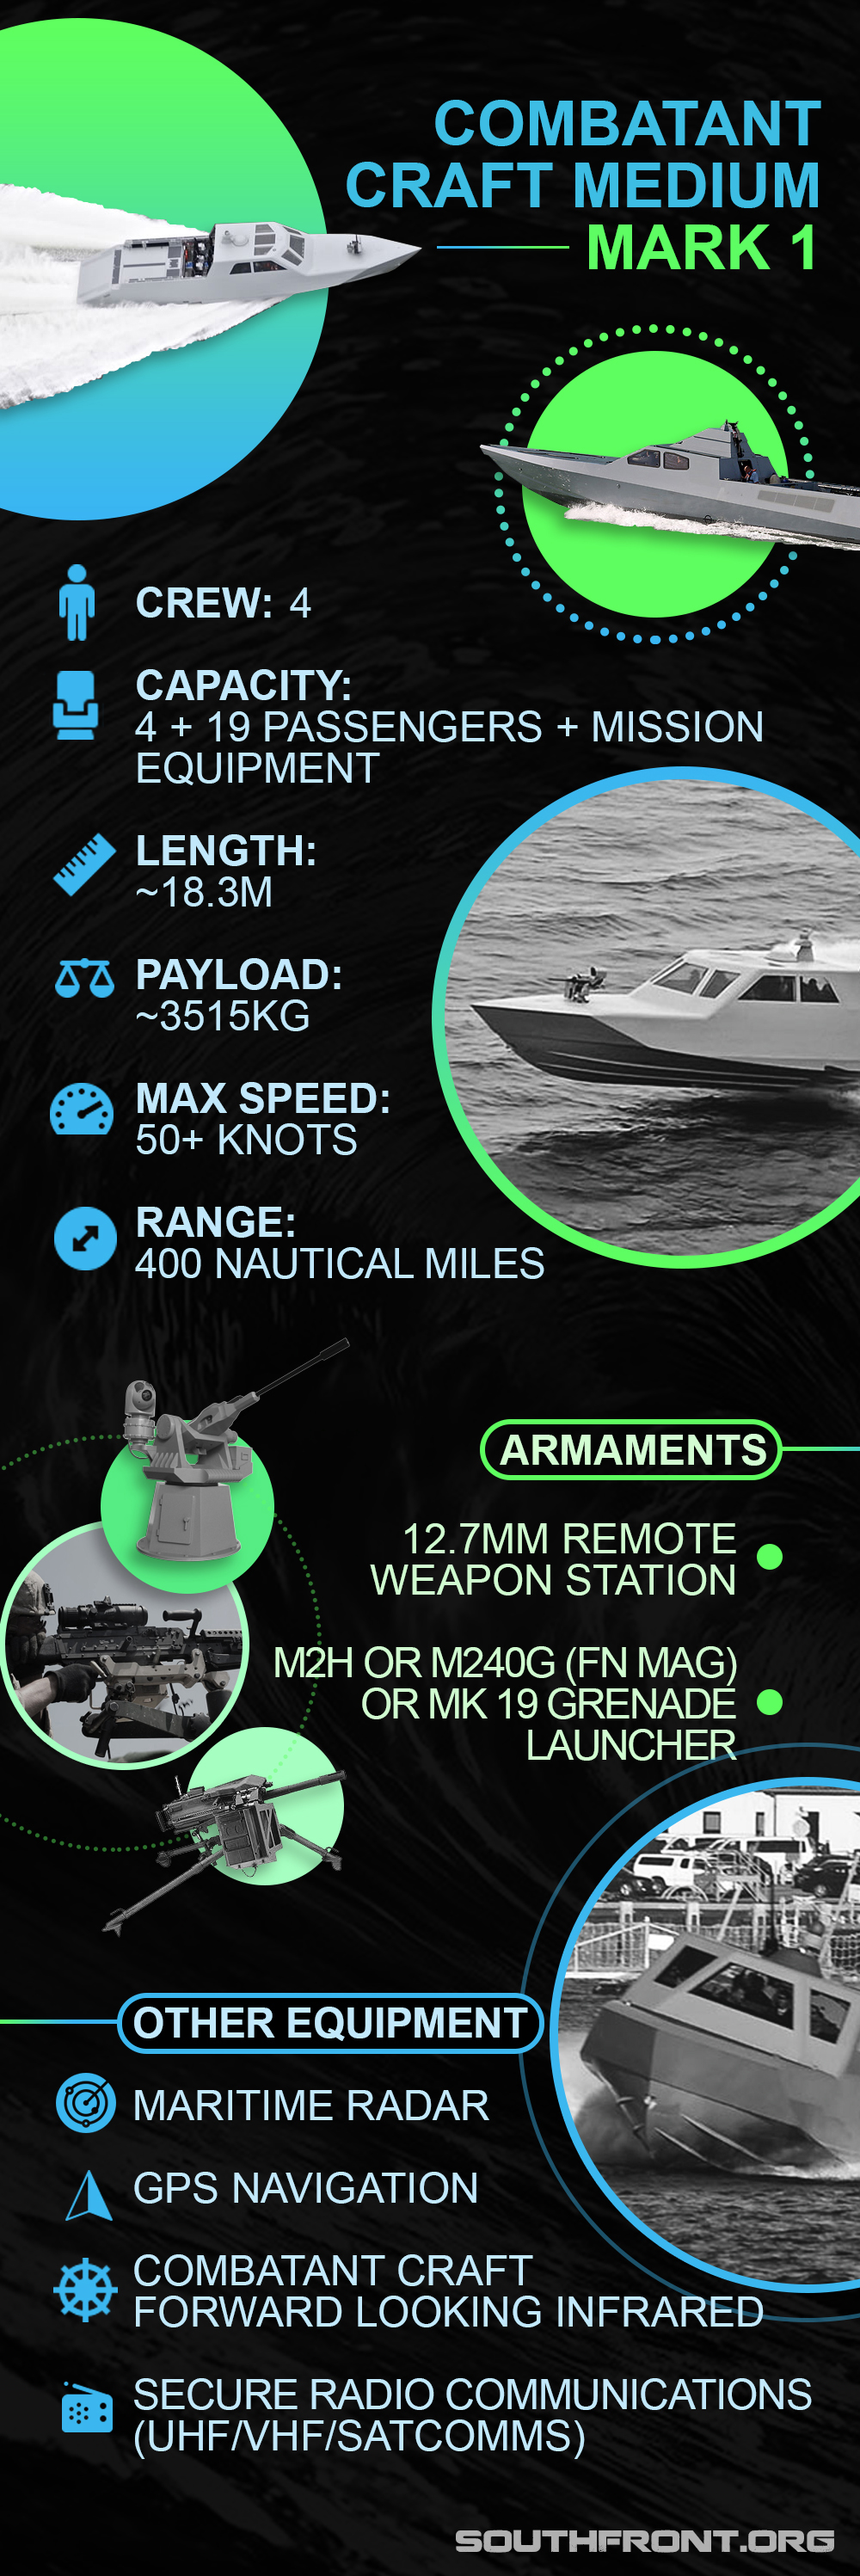 US Navy's Stealth Boat: Combatant Craft Medium Mark 1 (Infographics)